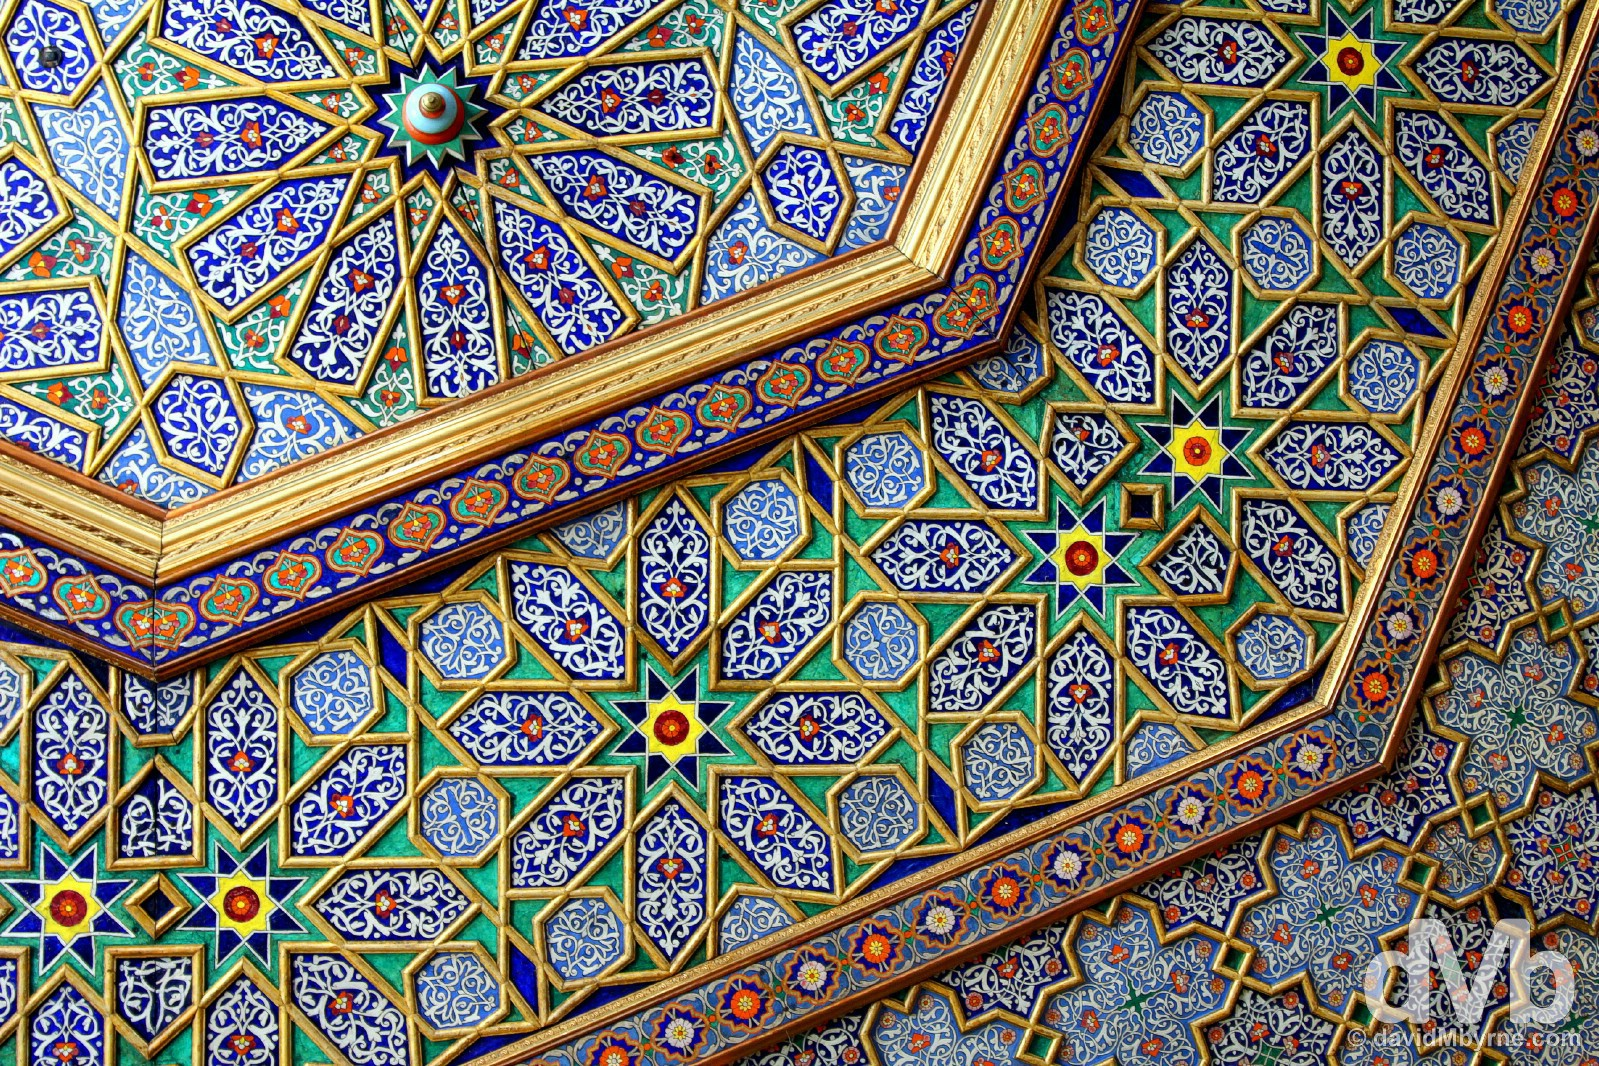 Ceiling detail in the Palace of Narallabay/Isfandiyar Palace in Khiva, Uzbekistan. March 15, 2015.